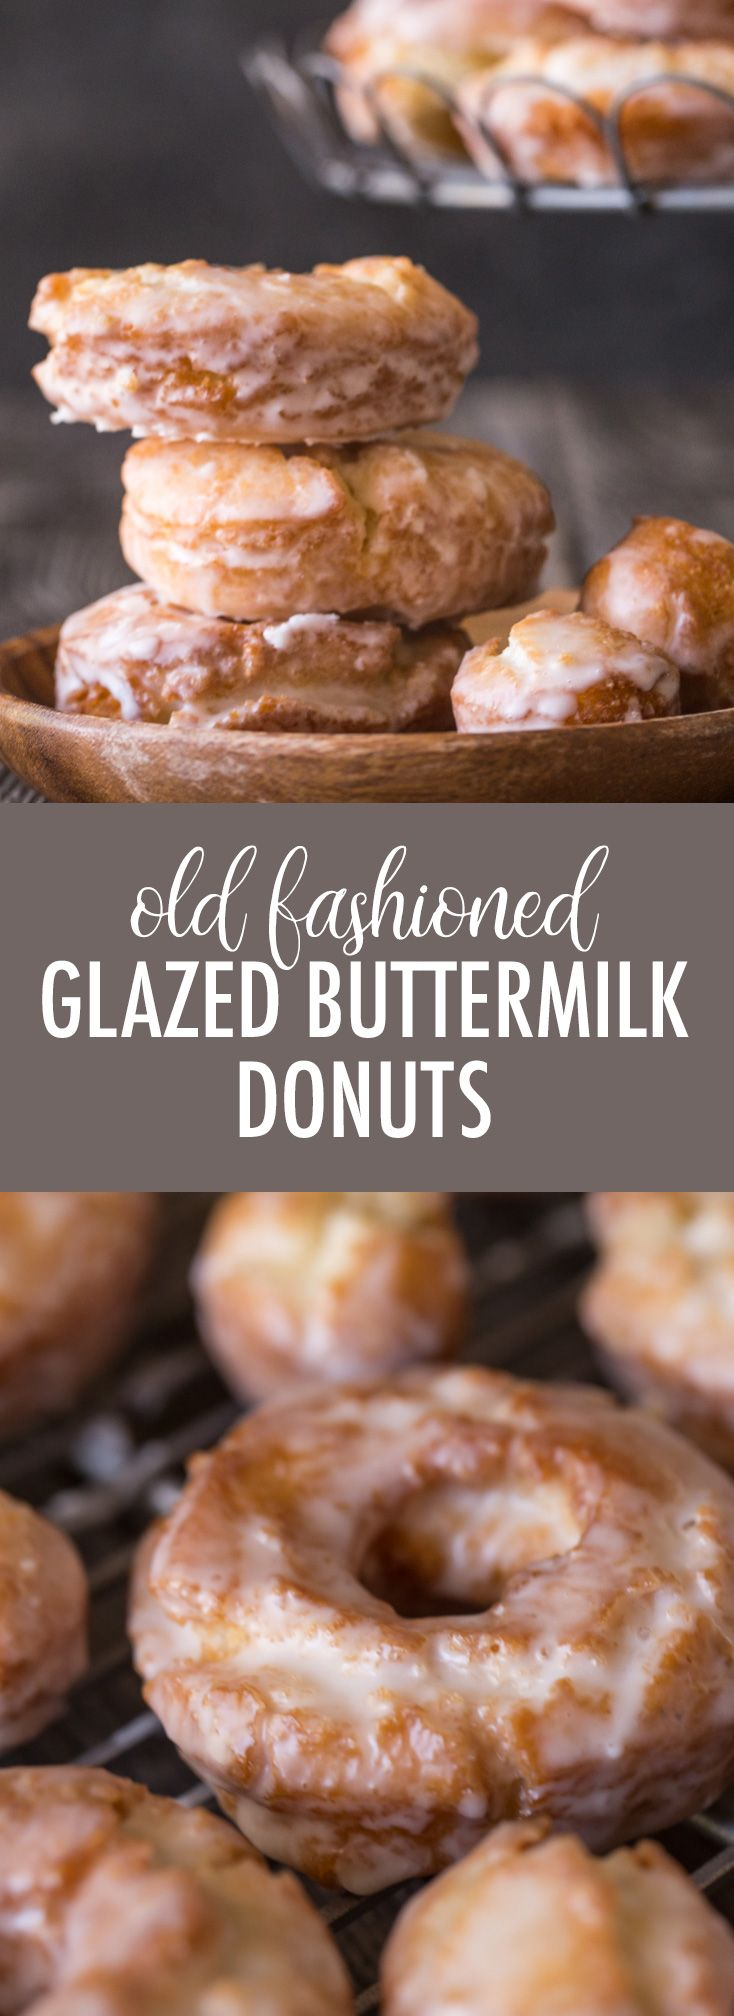 These Old Fashioned Glazed Buttermilk Donuts Are All About The Texture They Are Soft And Buttermilk Recipes Cake Donuts Recipe Old Fashioned Cake Donut Recipe